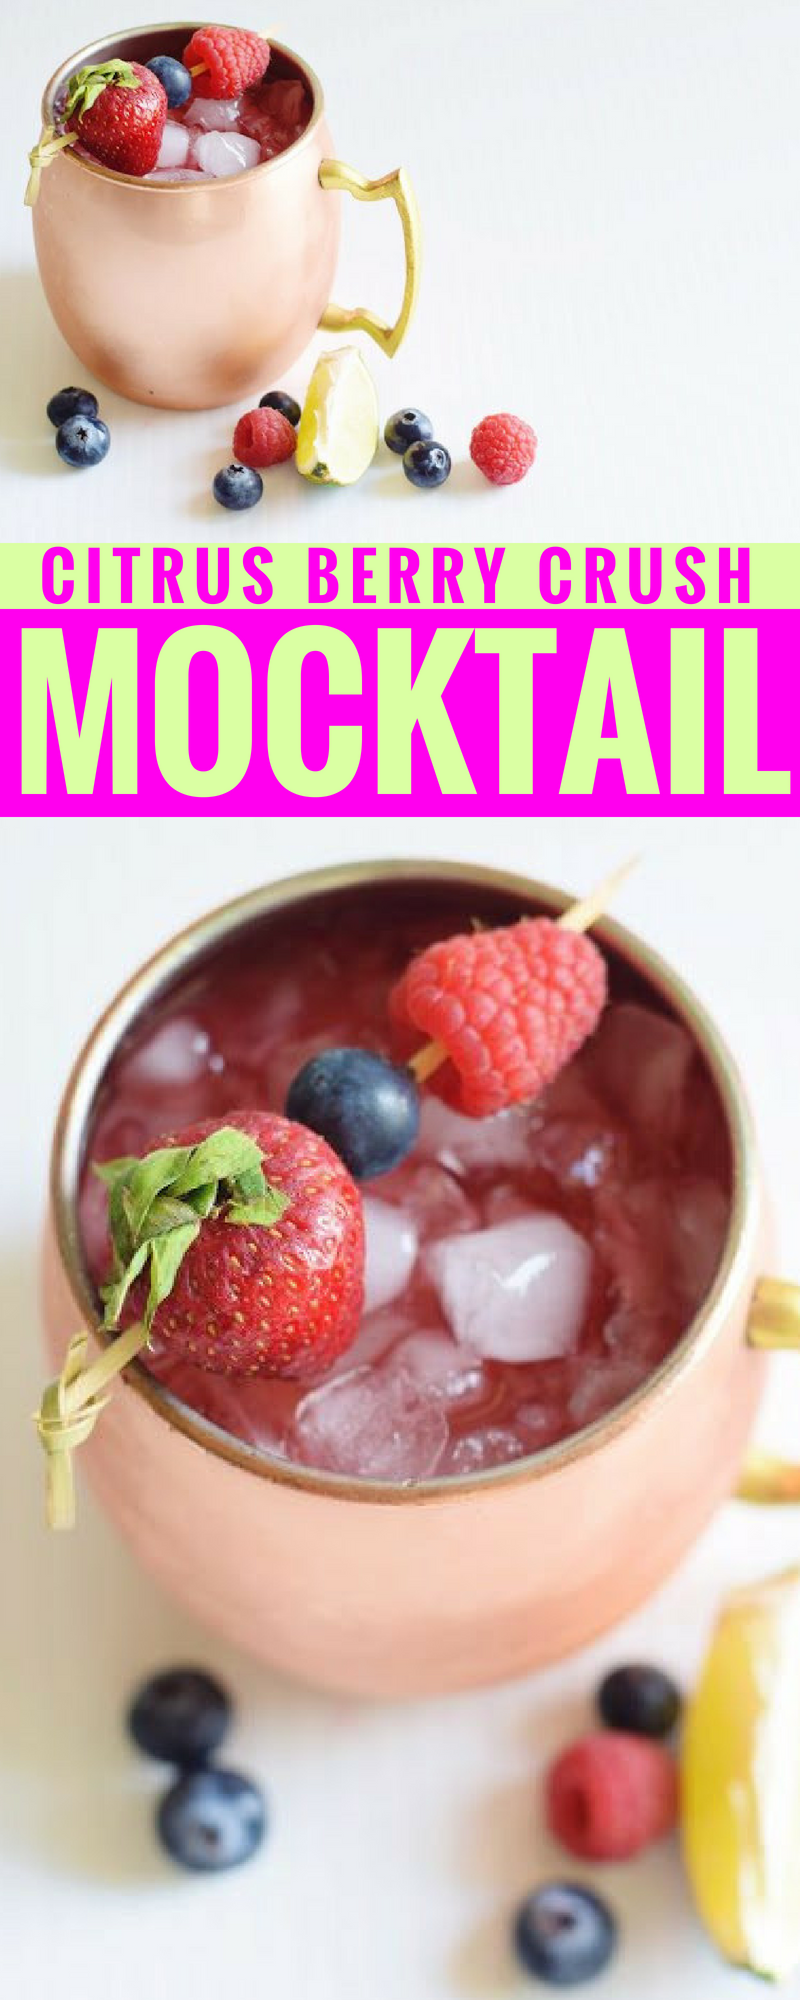 Citrus Berry Crush Mocktail - Mocktail Recipe - Mocktail Recipe Ideas - Easy Mocktail - Cocktail Ideas - La Croix - Summer Mocktail - Summer Cocktails - Berry Cocktails - Copper Mug Recipes - Communikait by Kait Hanson